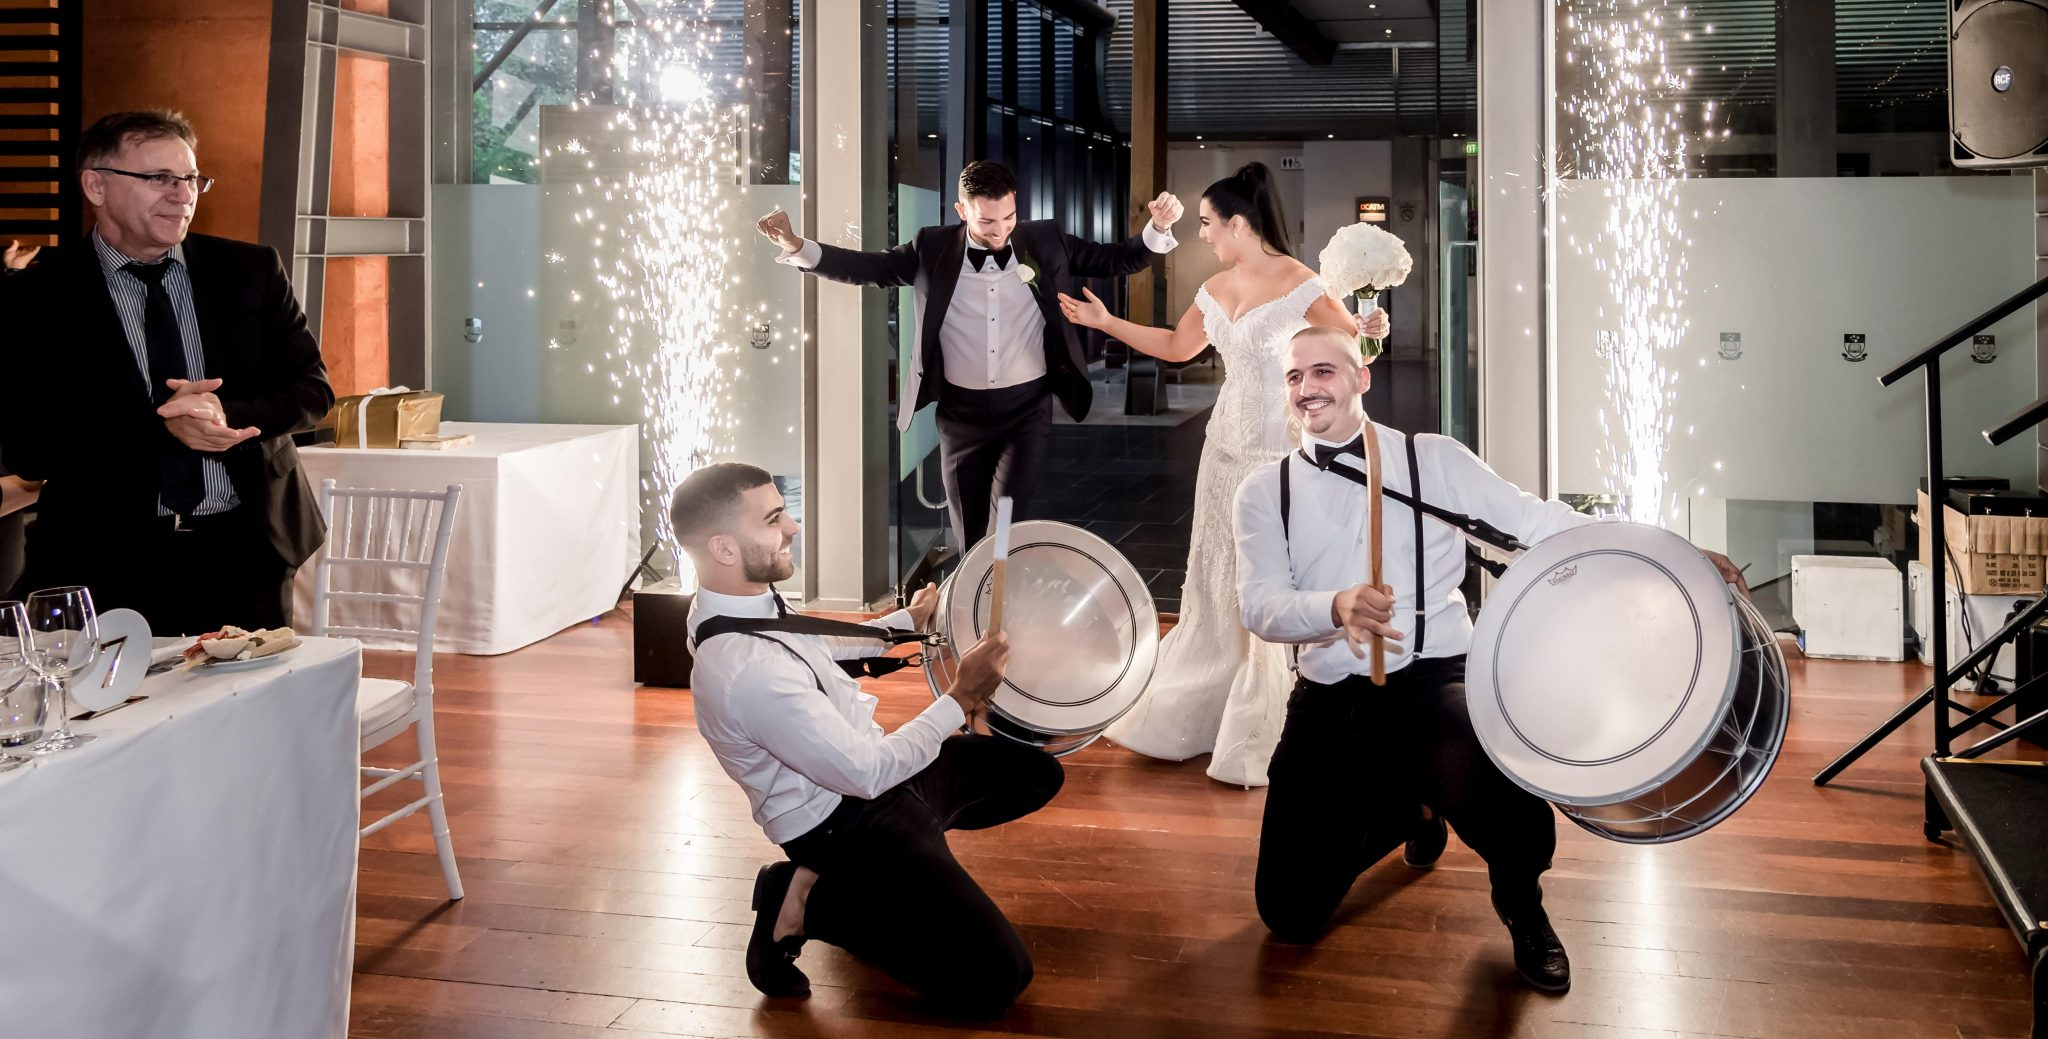 lebanese drummers at a wedding in adelaide with fireworks